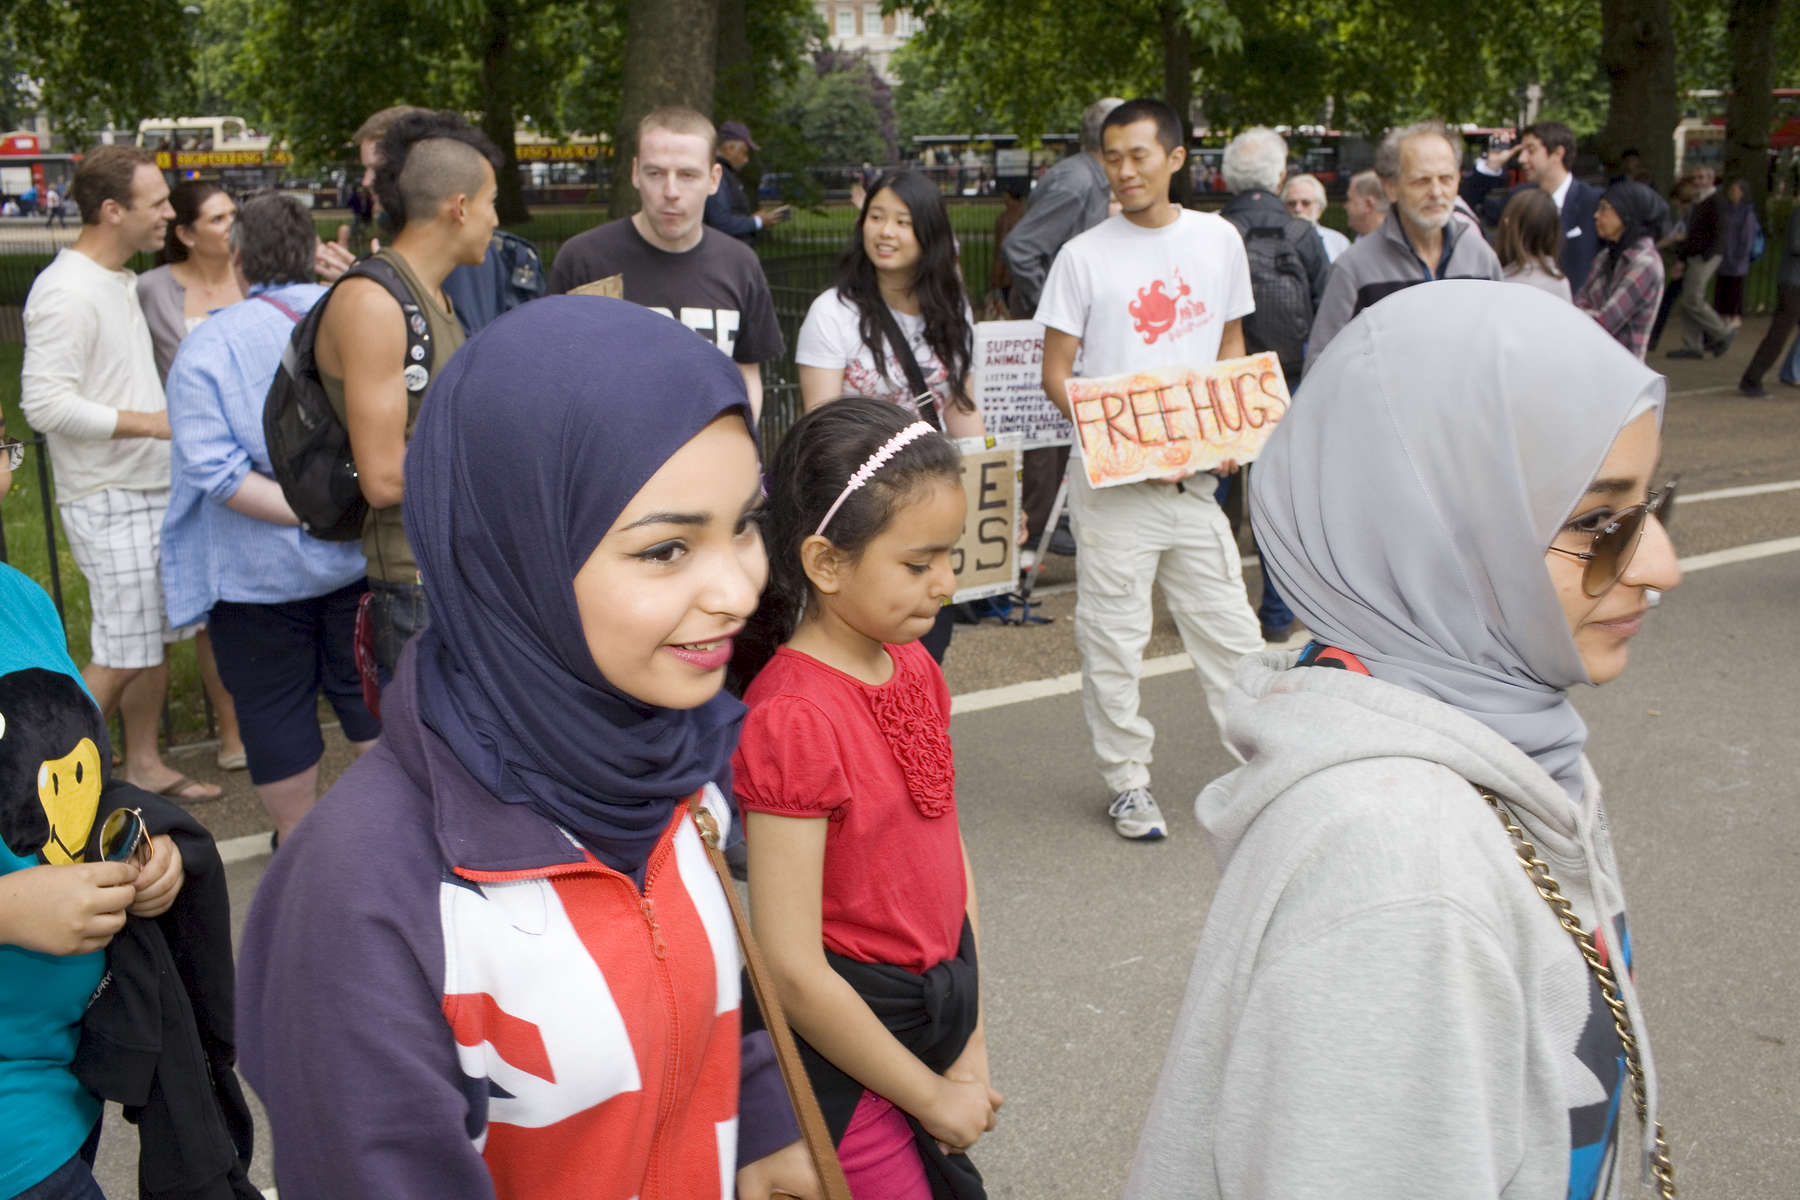 You Arab women pass a man offering 'FREE HUGS' at speaker's corner in Hyde Park.Arabs have been visiting London for centuries and around 300,000 Arabs have chosen to make the capital their home and a further half a million throughout the UK. The number swells significantly from visitors during the summer. Saudi Arabians spend the most on property in London choosing Belgravia, Kenington, Knightsbridge and Holland Park. Arab culture continues to increase in visibility throughout the capital as integration into this most transient of city's continues.©Peter Dench/Reportage by Getty Images